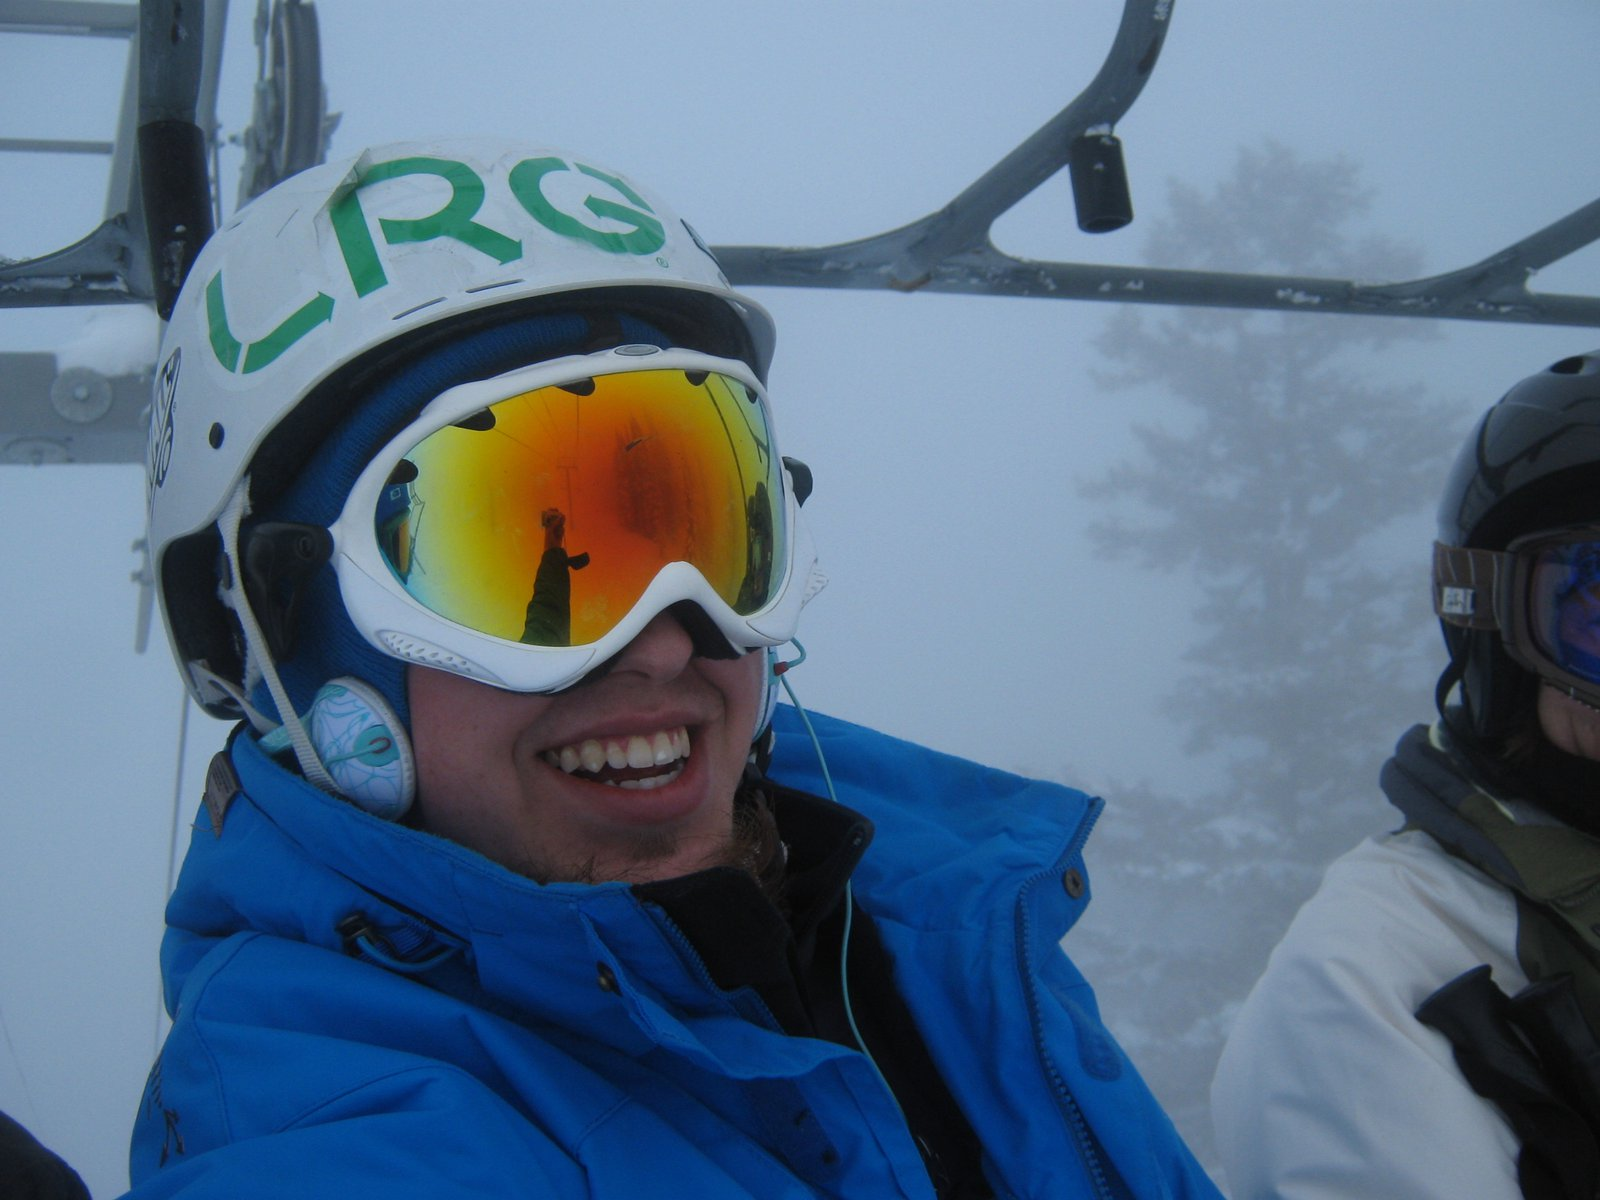 Me on the lift